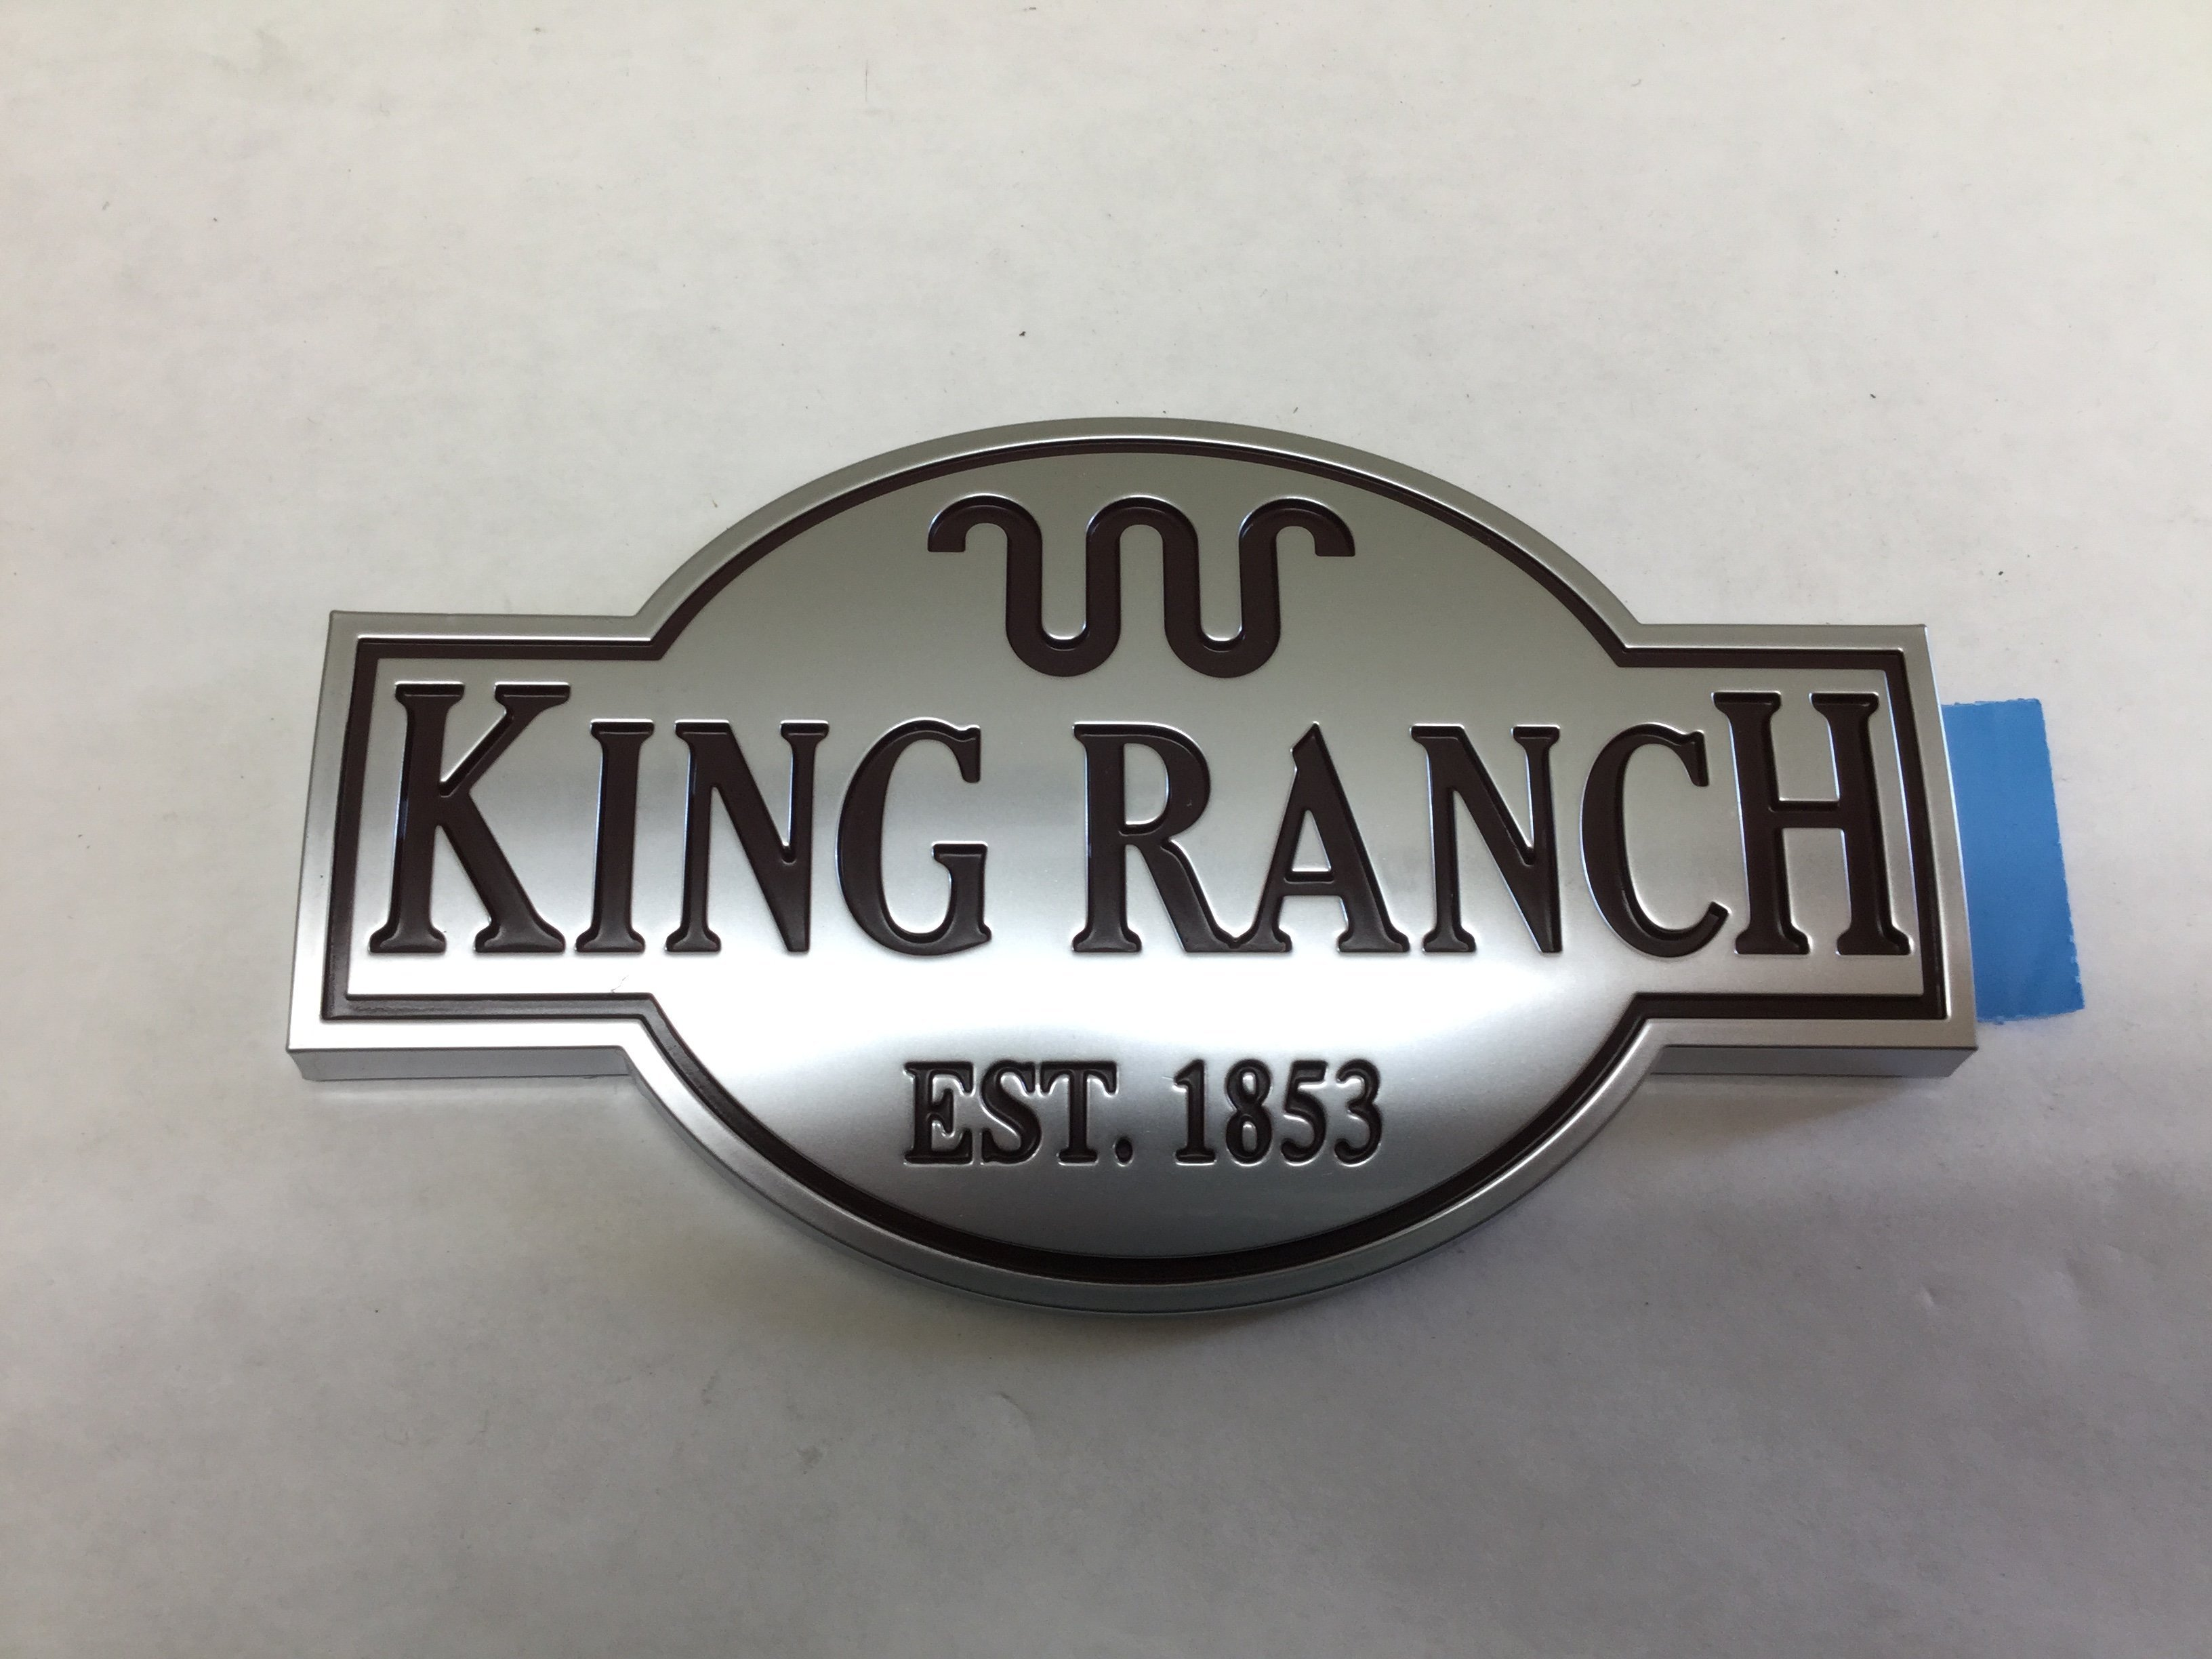 King Ranch Emblem 2005.